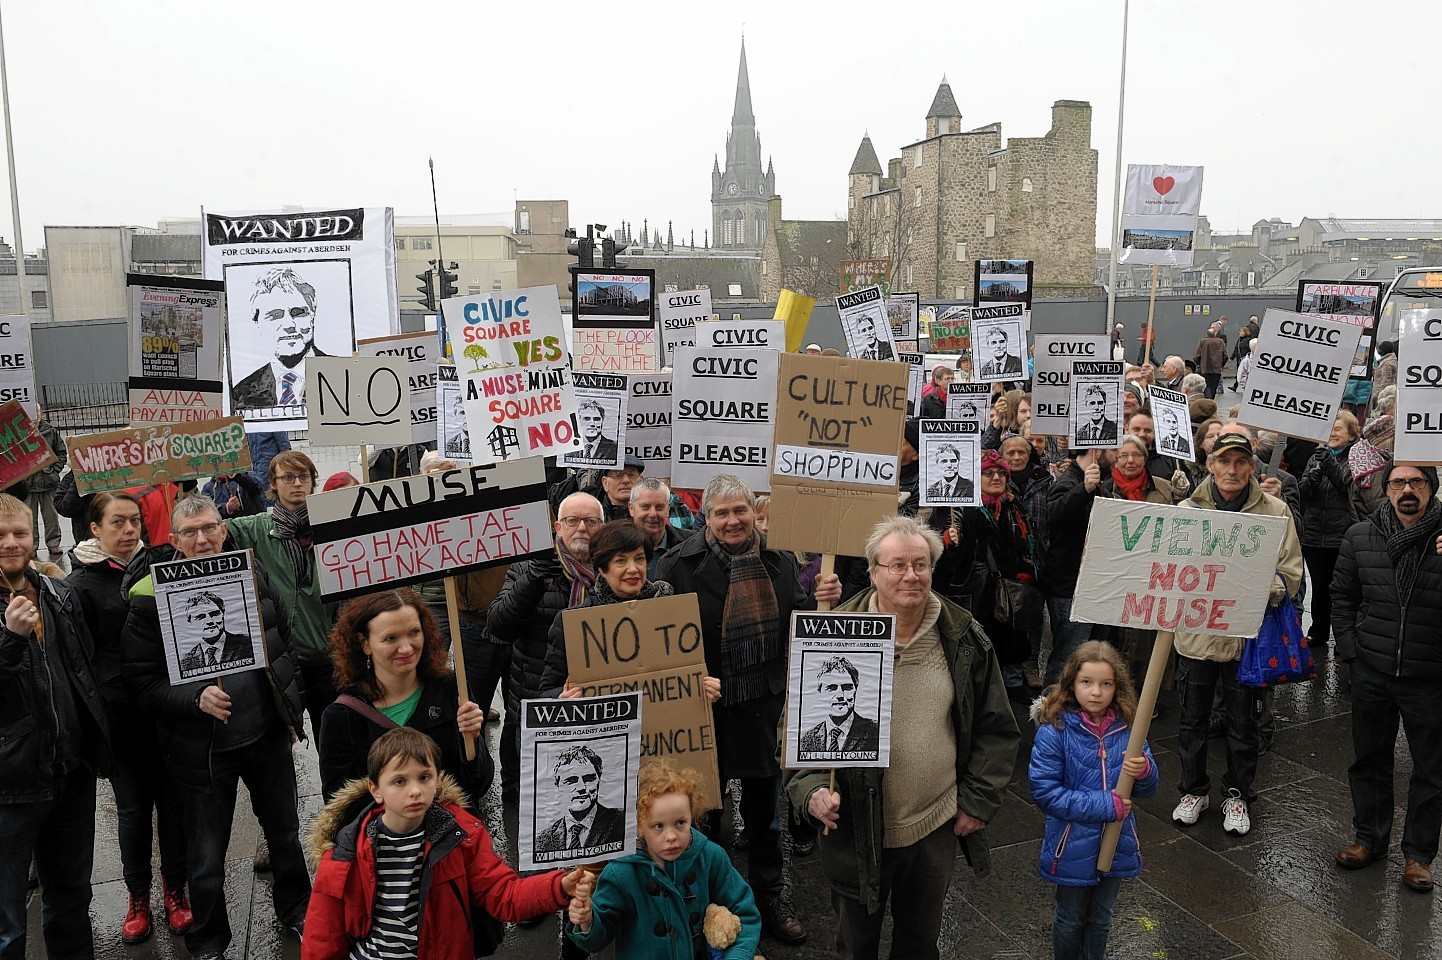 Protesters at demonstration against Marischal Square scheme